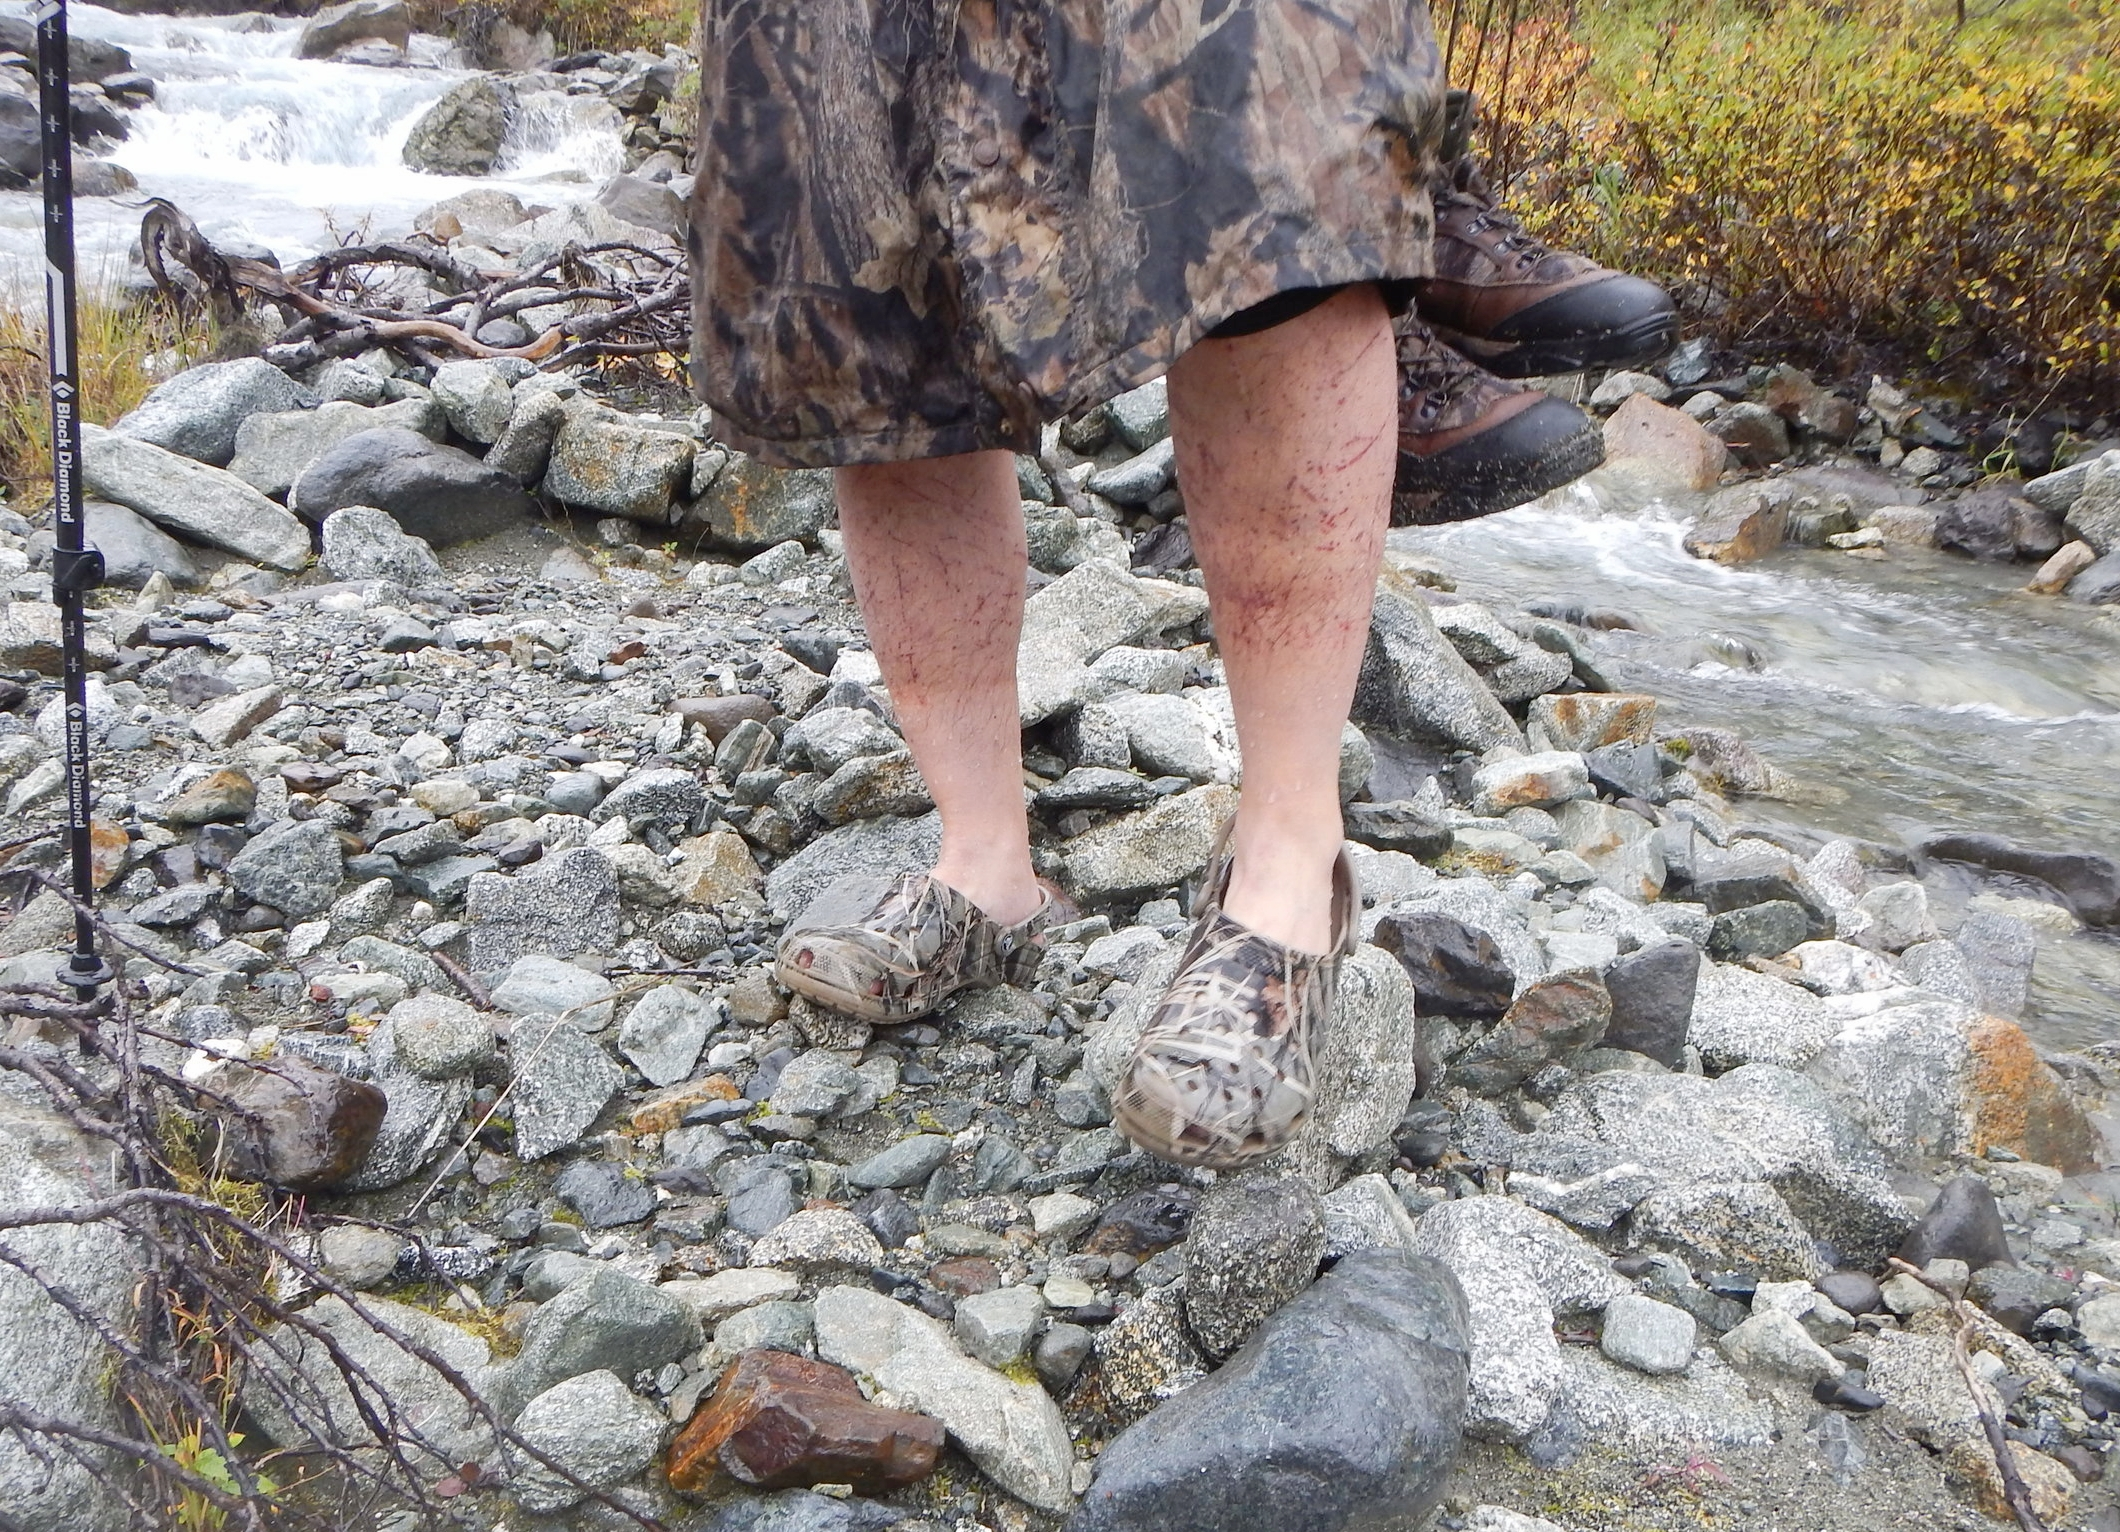 Sagen after crossing the creek with his crocs. Check out his legs from wearing shorts on the way in.